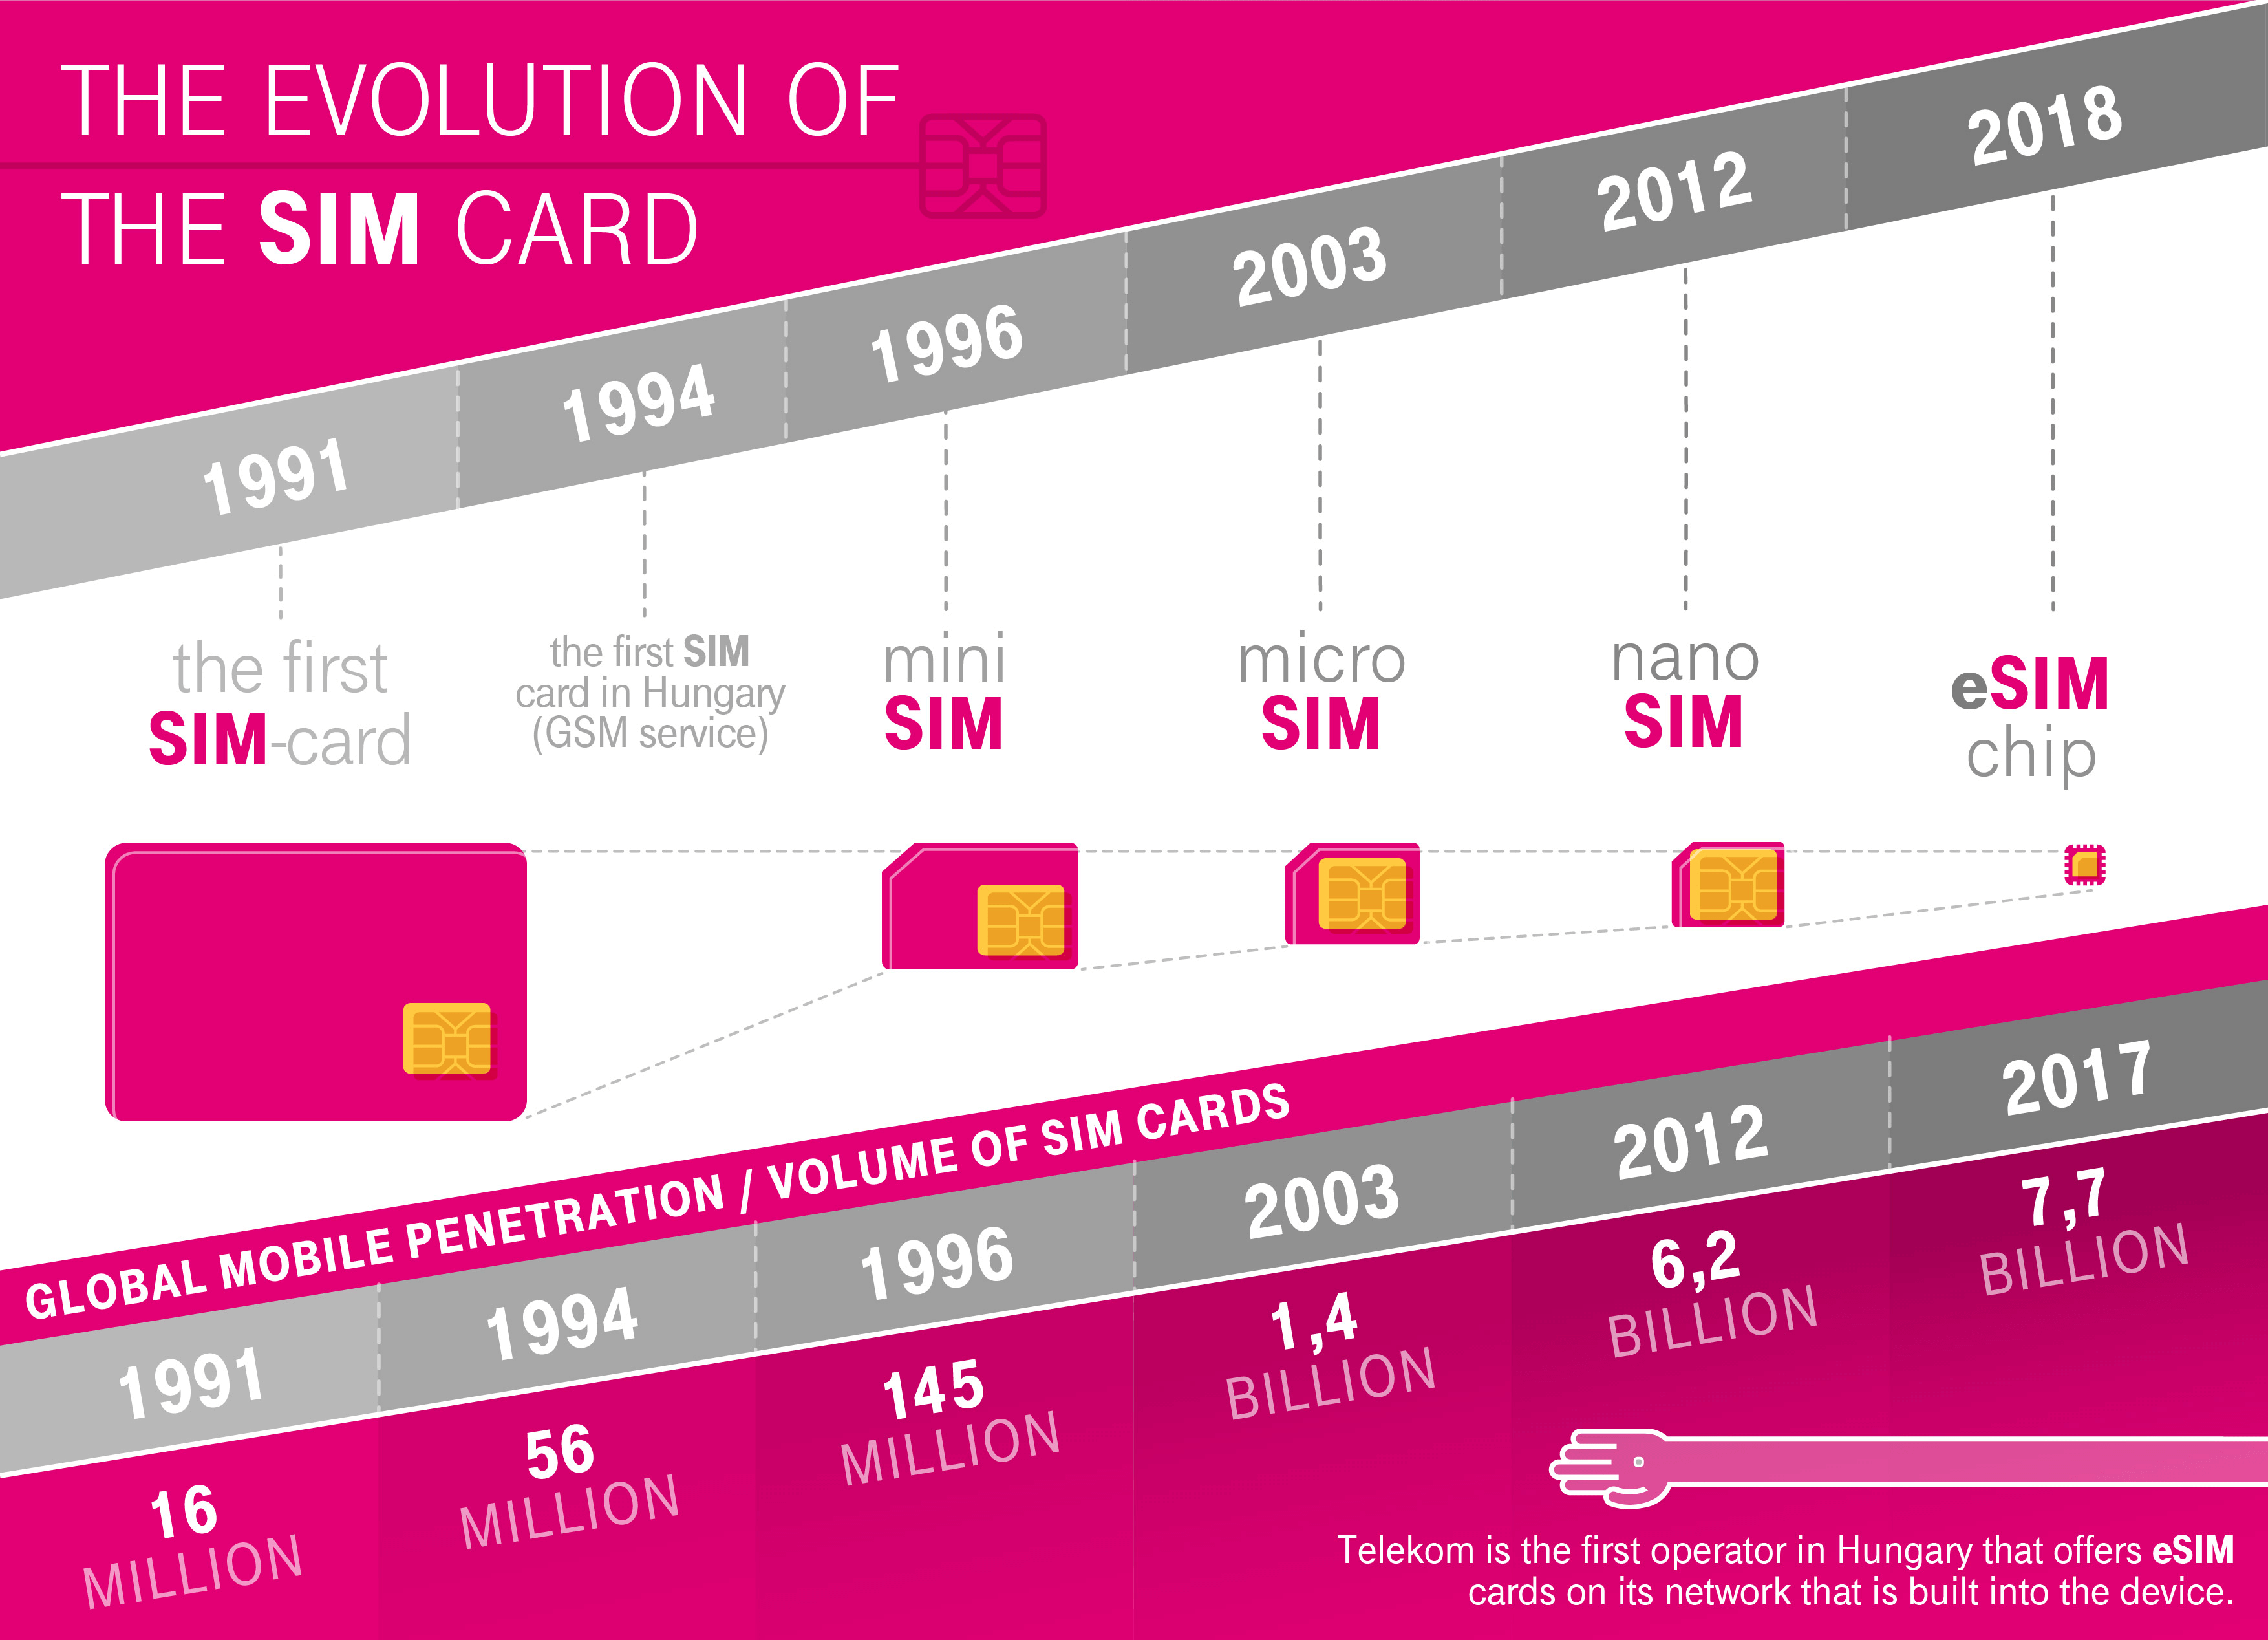 What is eSim and how it will change the future of communication device?